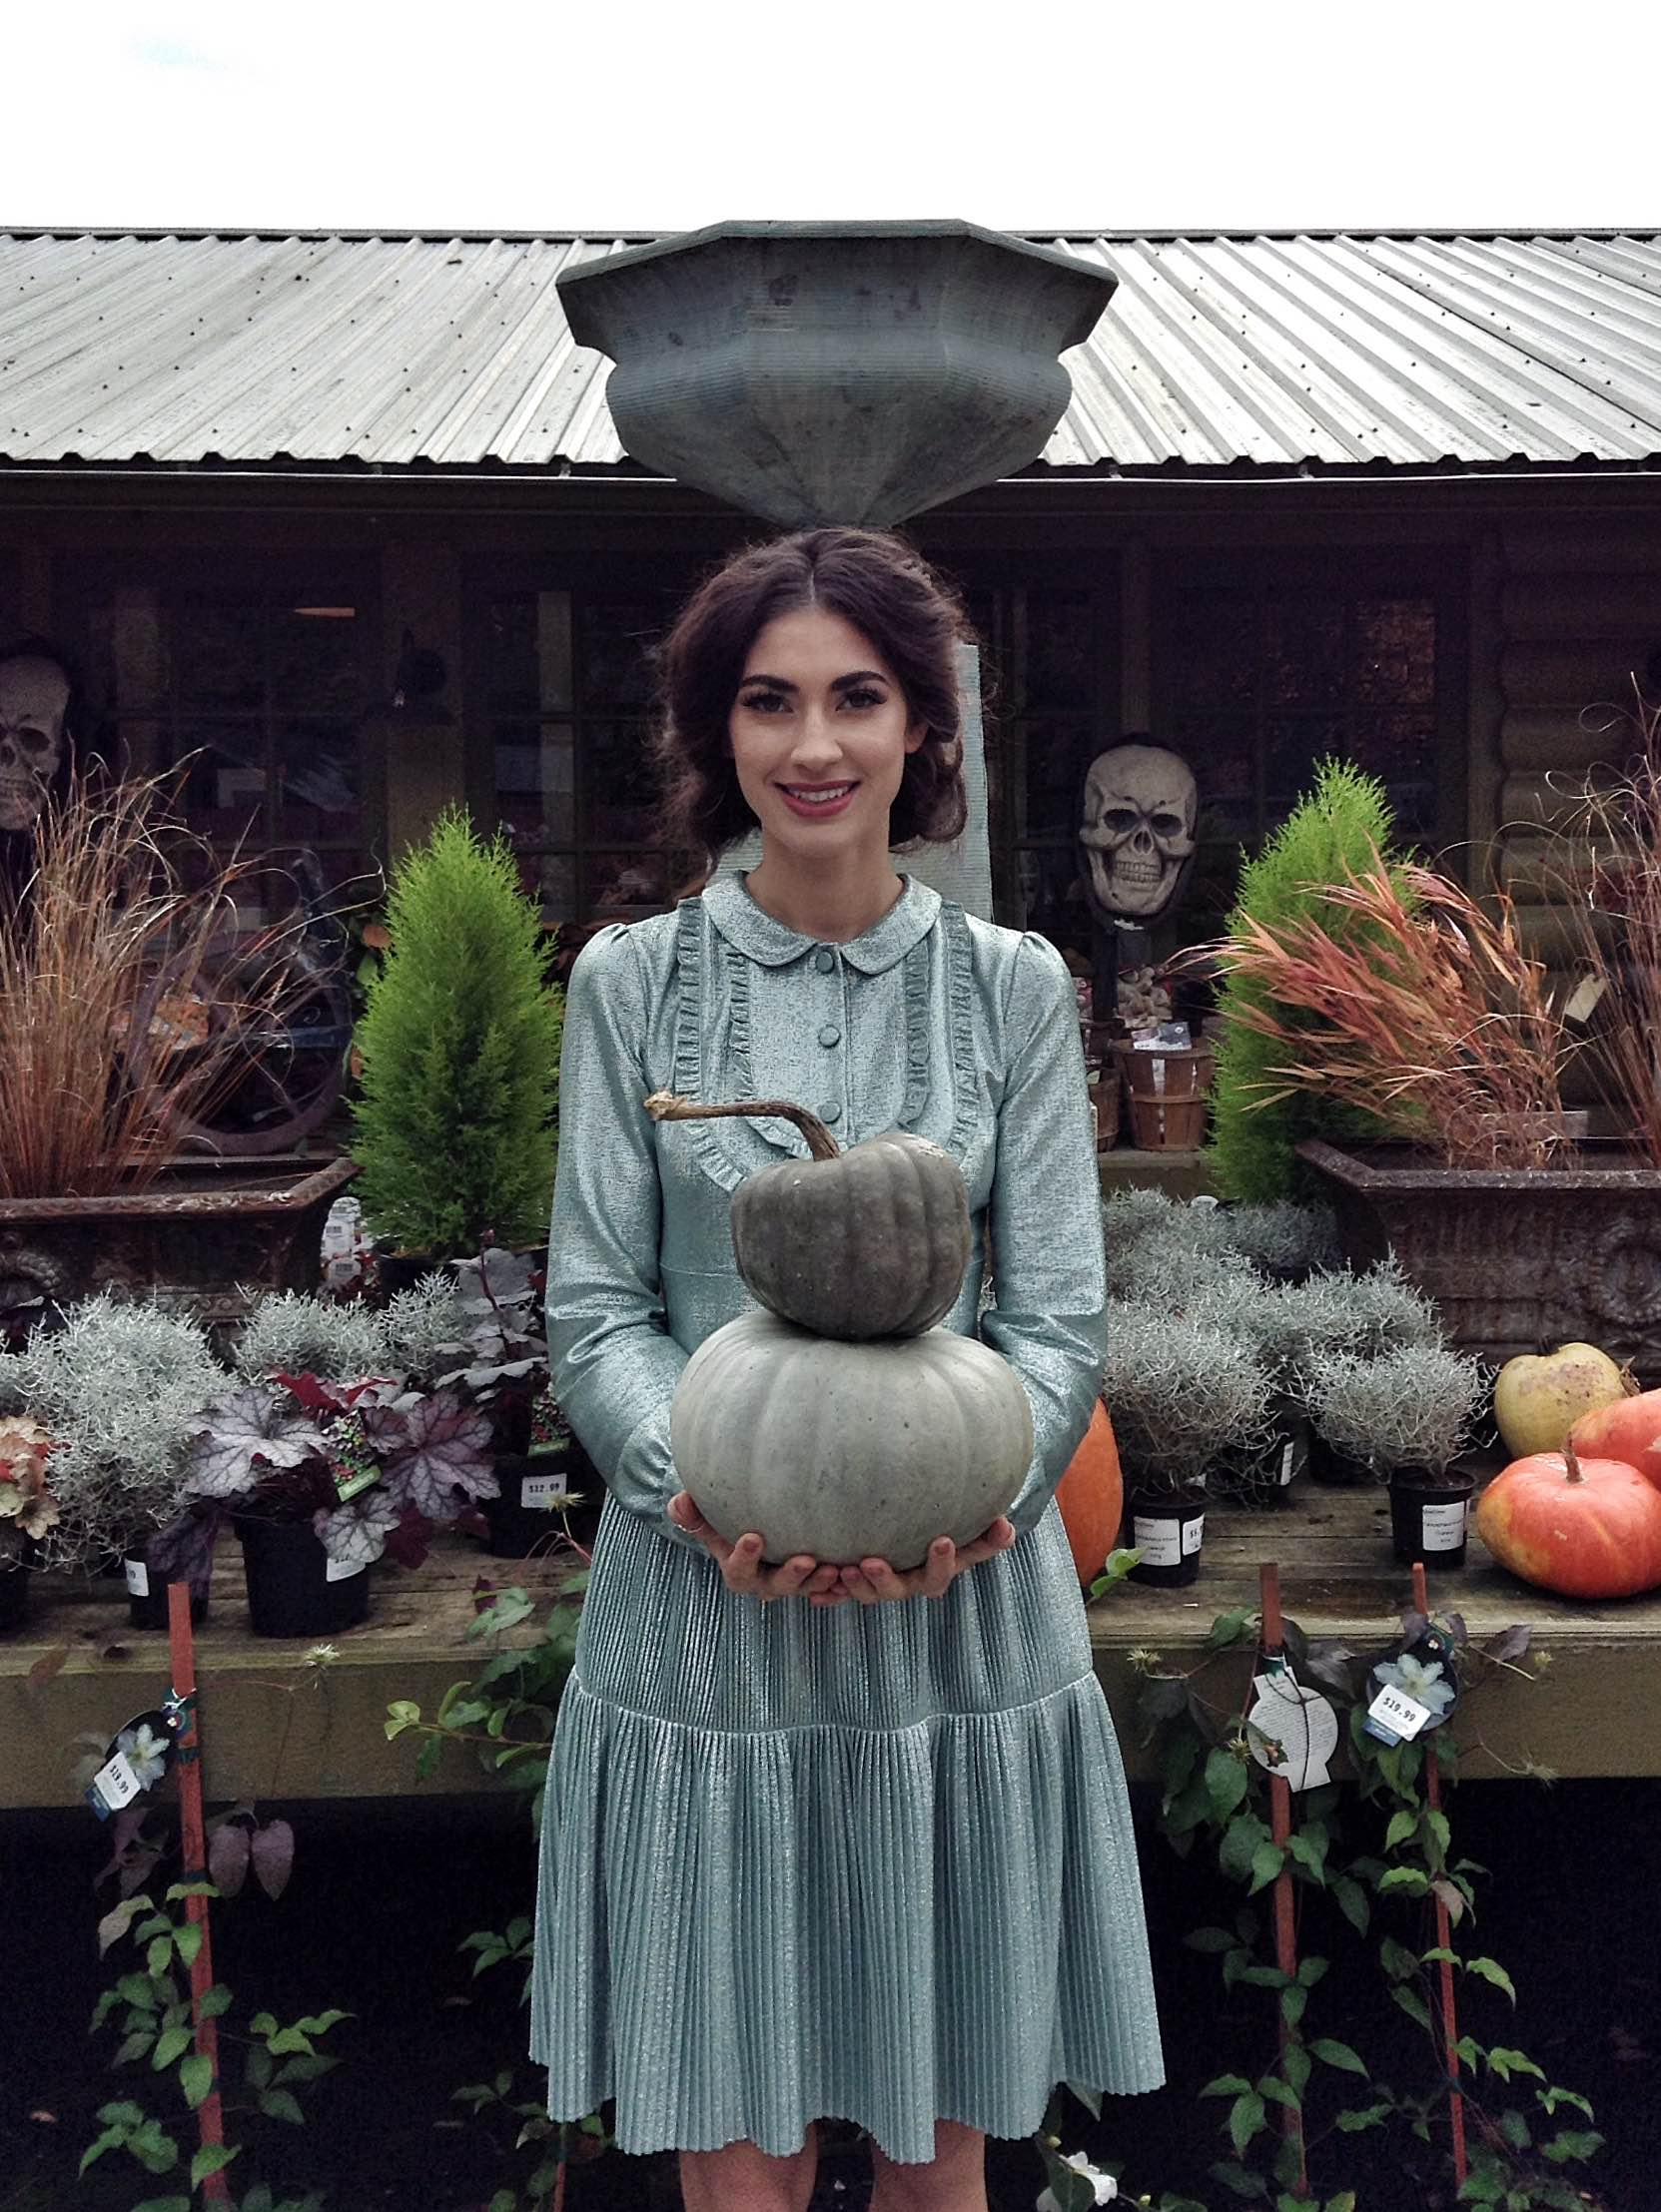 Bree Woodill wearing Blumarine AW16 & carrying Jarrahdale pumpkins